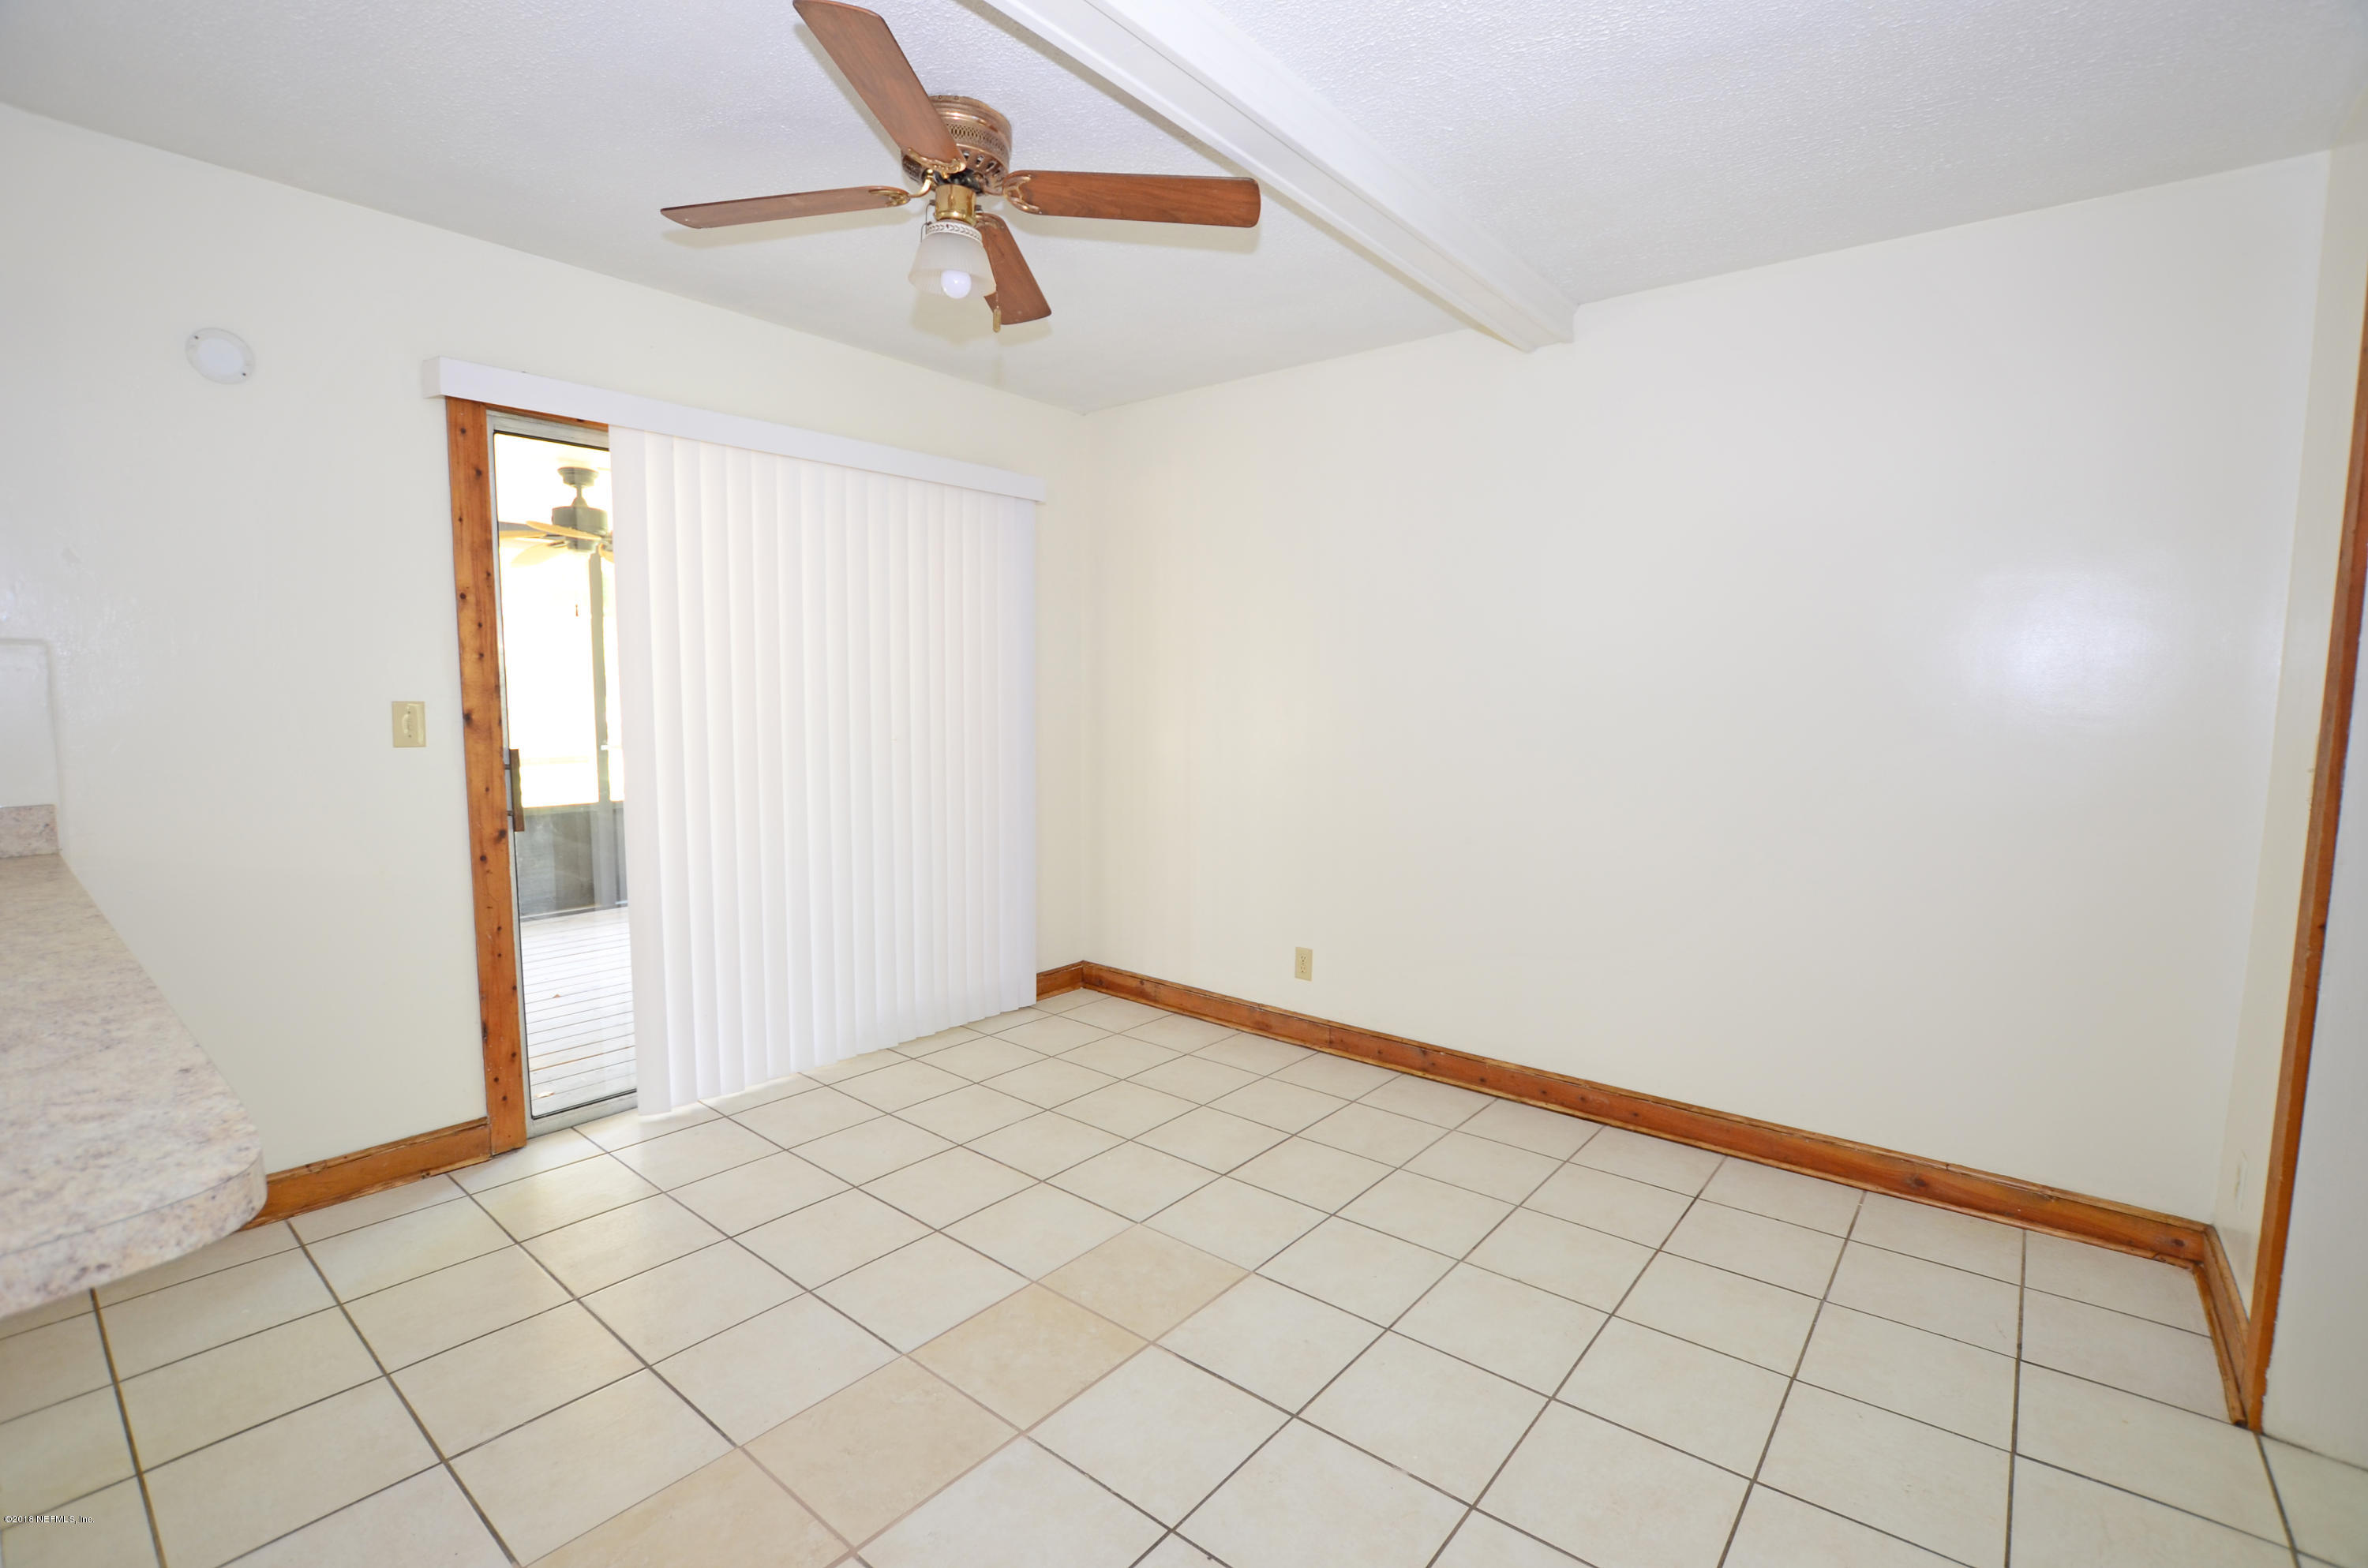 8356 CONCORD, JACKSONVILLE, FLORIDA 32208, 3 Bedrooms Bedrooms, ,2 BathroomsBathrooms,Residential - single family,For sale,CONCORD,928137